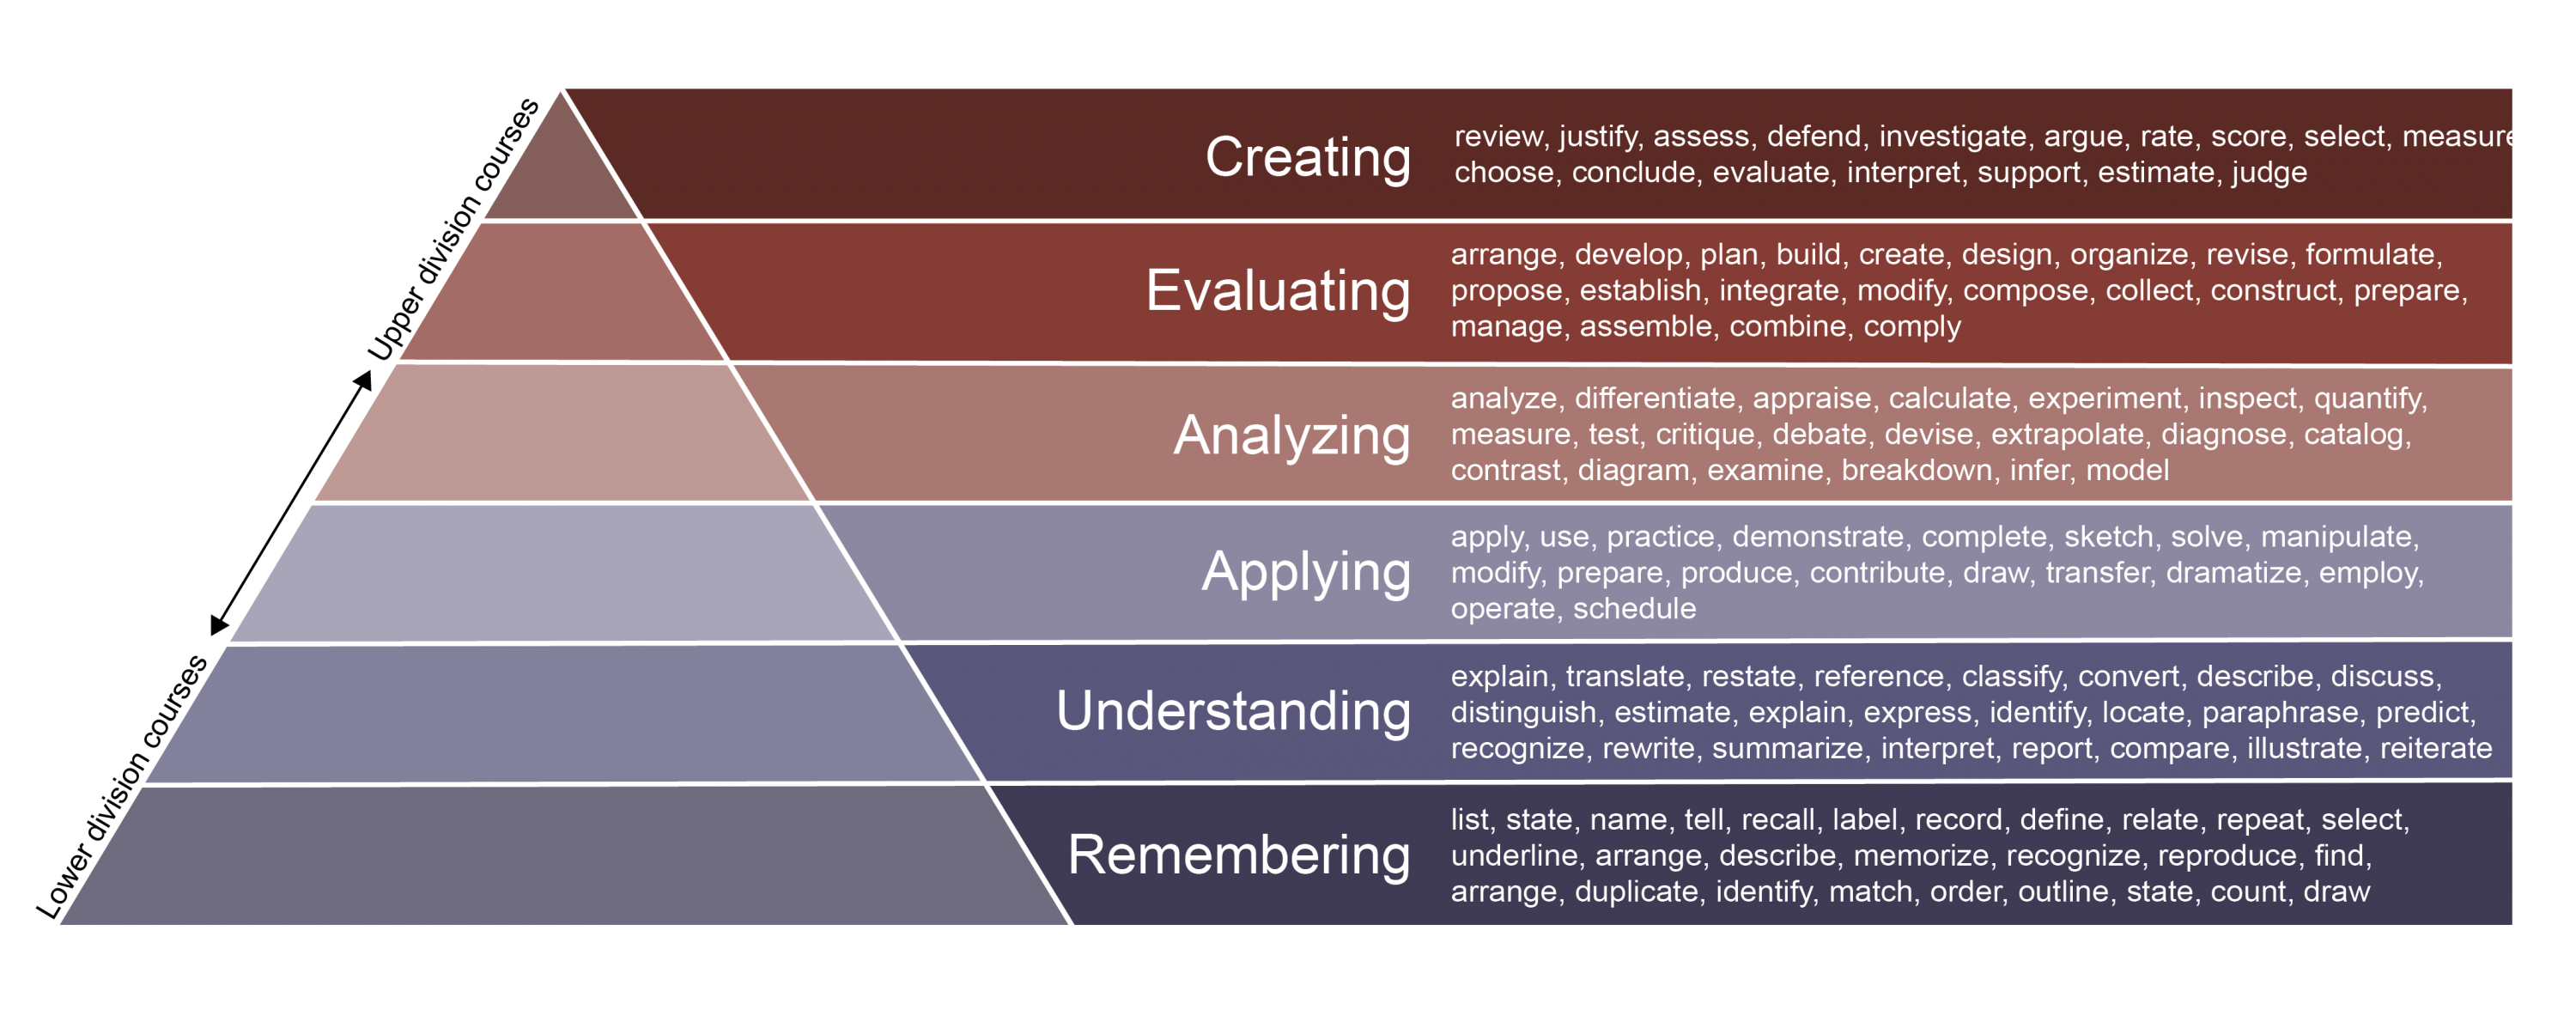 Bloom's Taxonomy Pyramid with Verbs